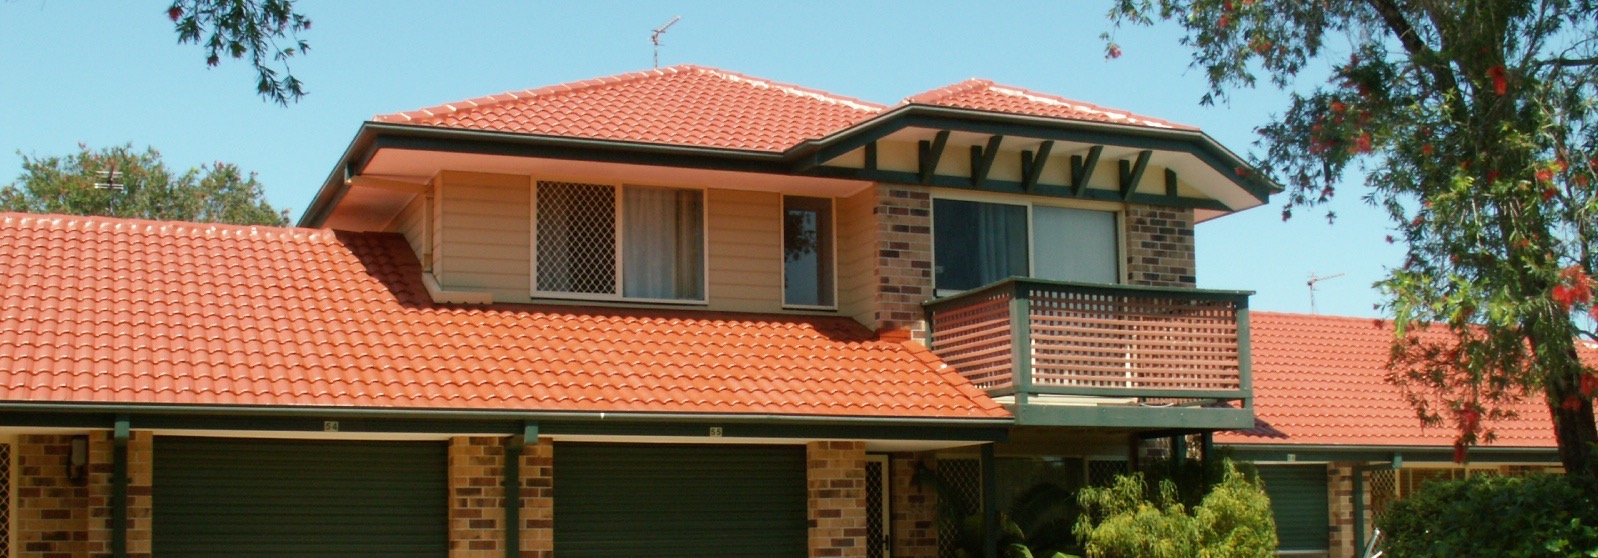 Gold Coast Roofing Restorations image 4